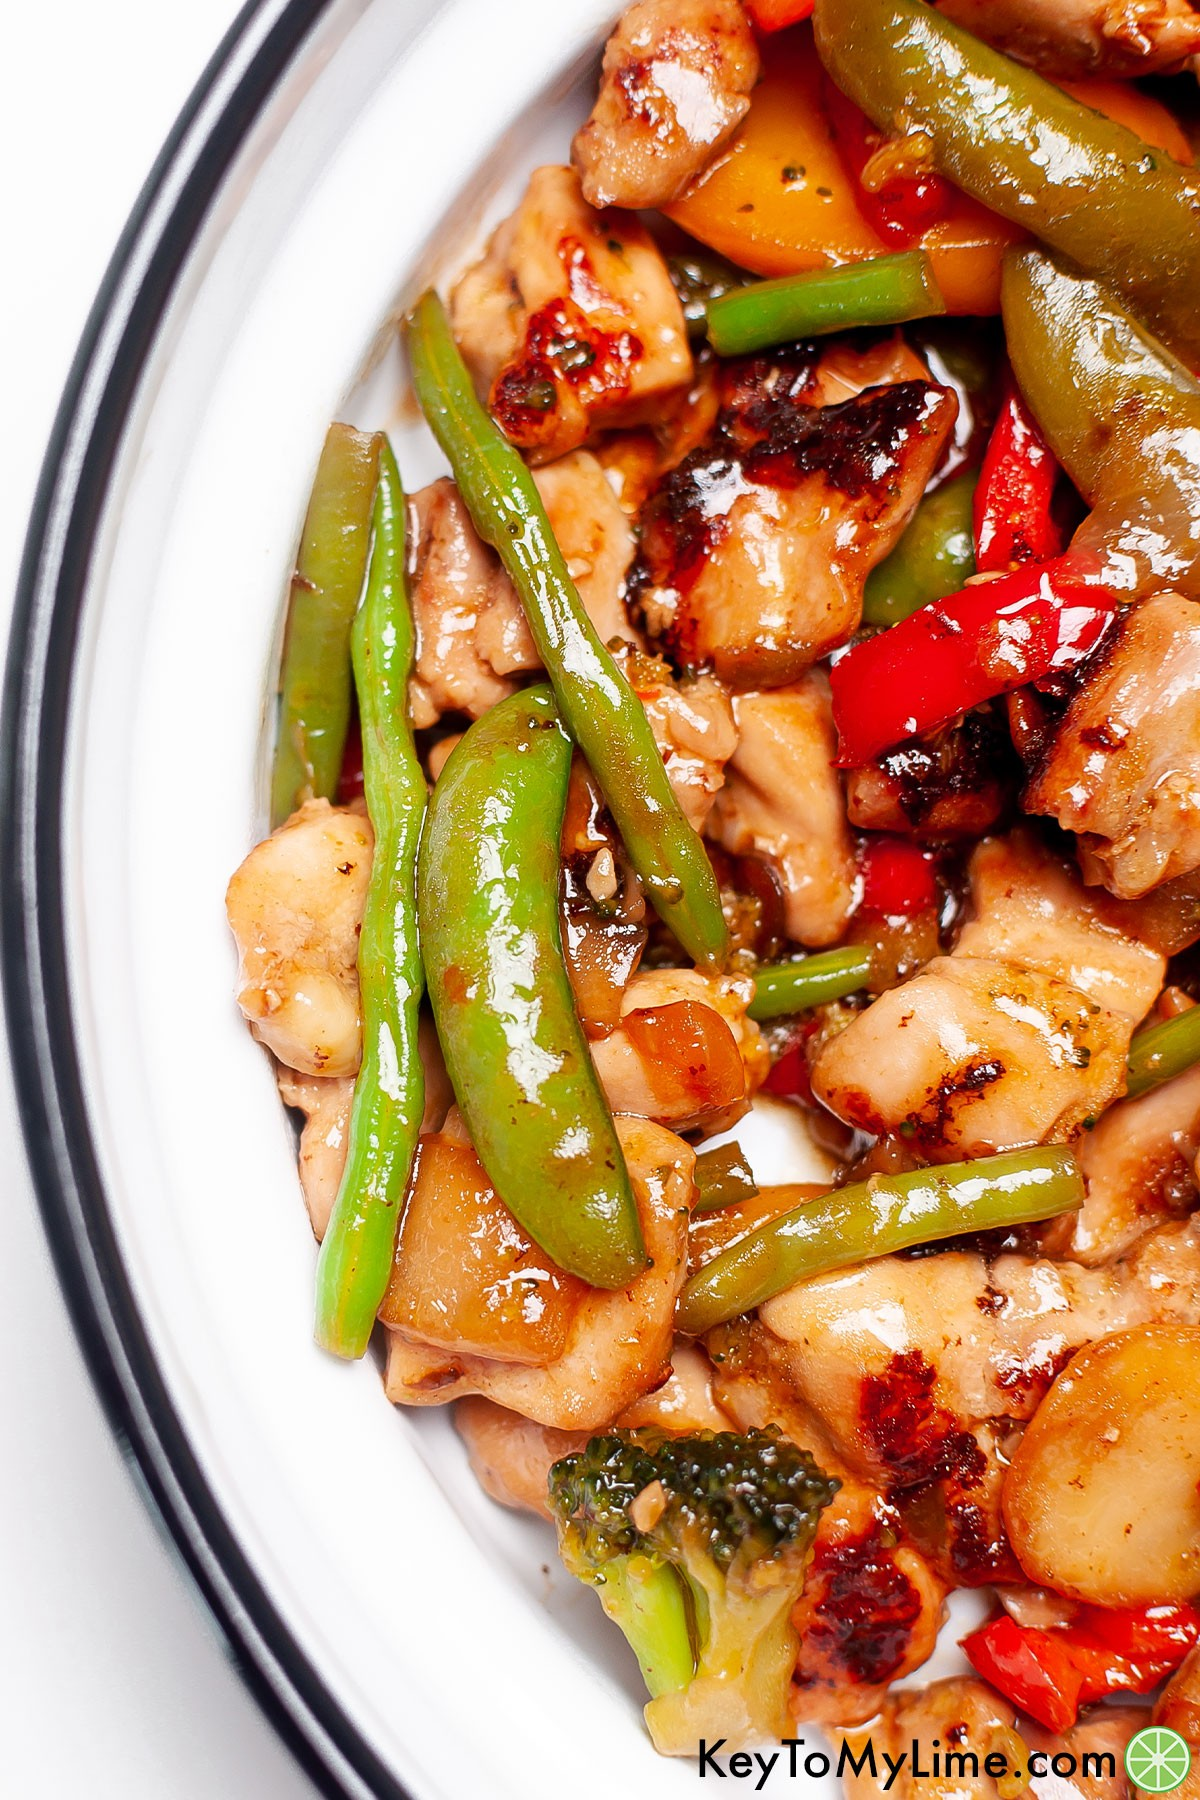 A close up of chicken stir fry in a skillet.